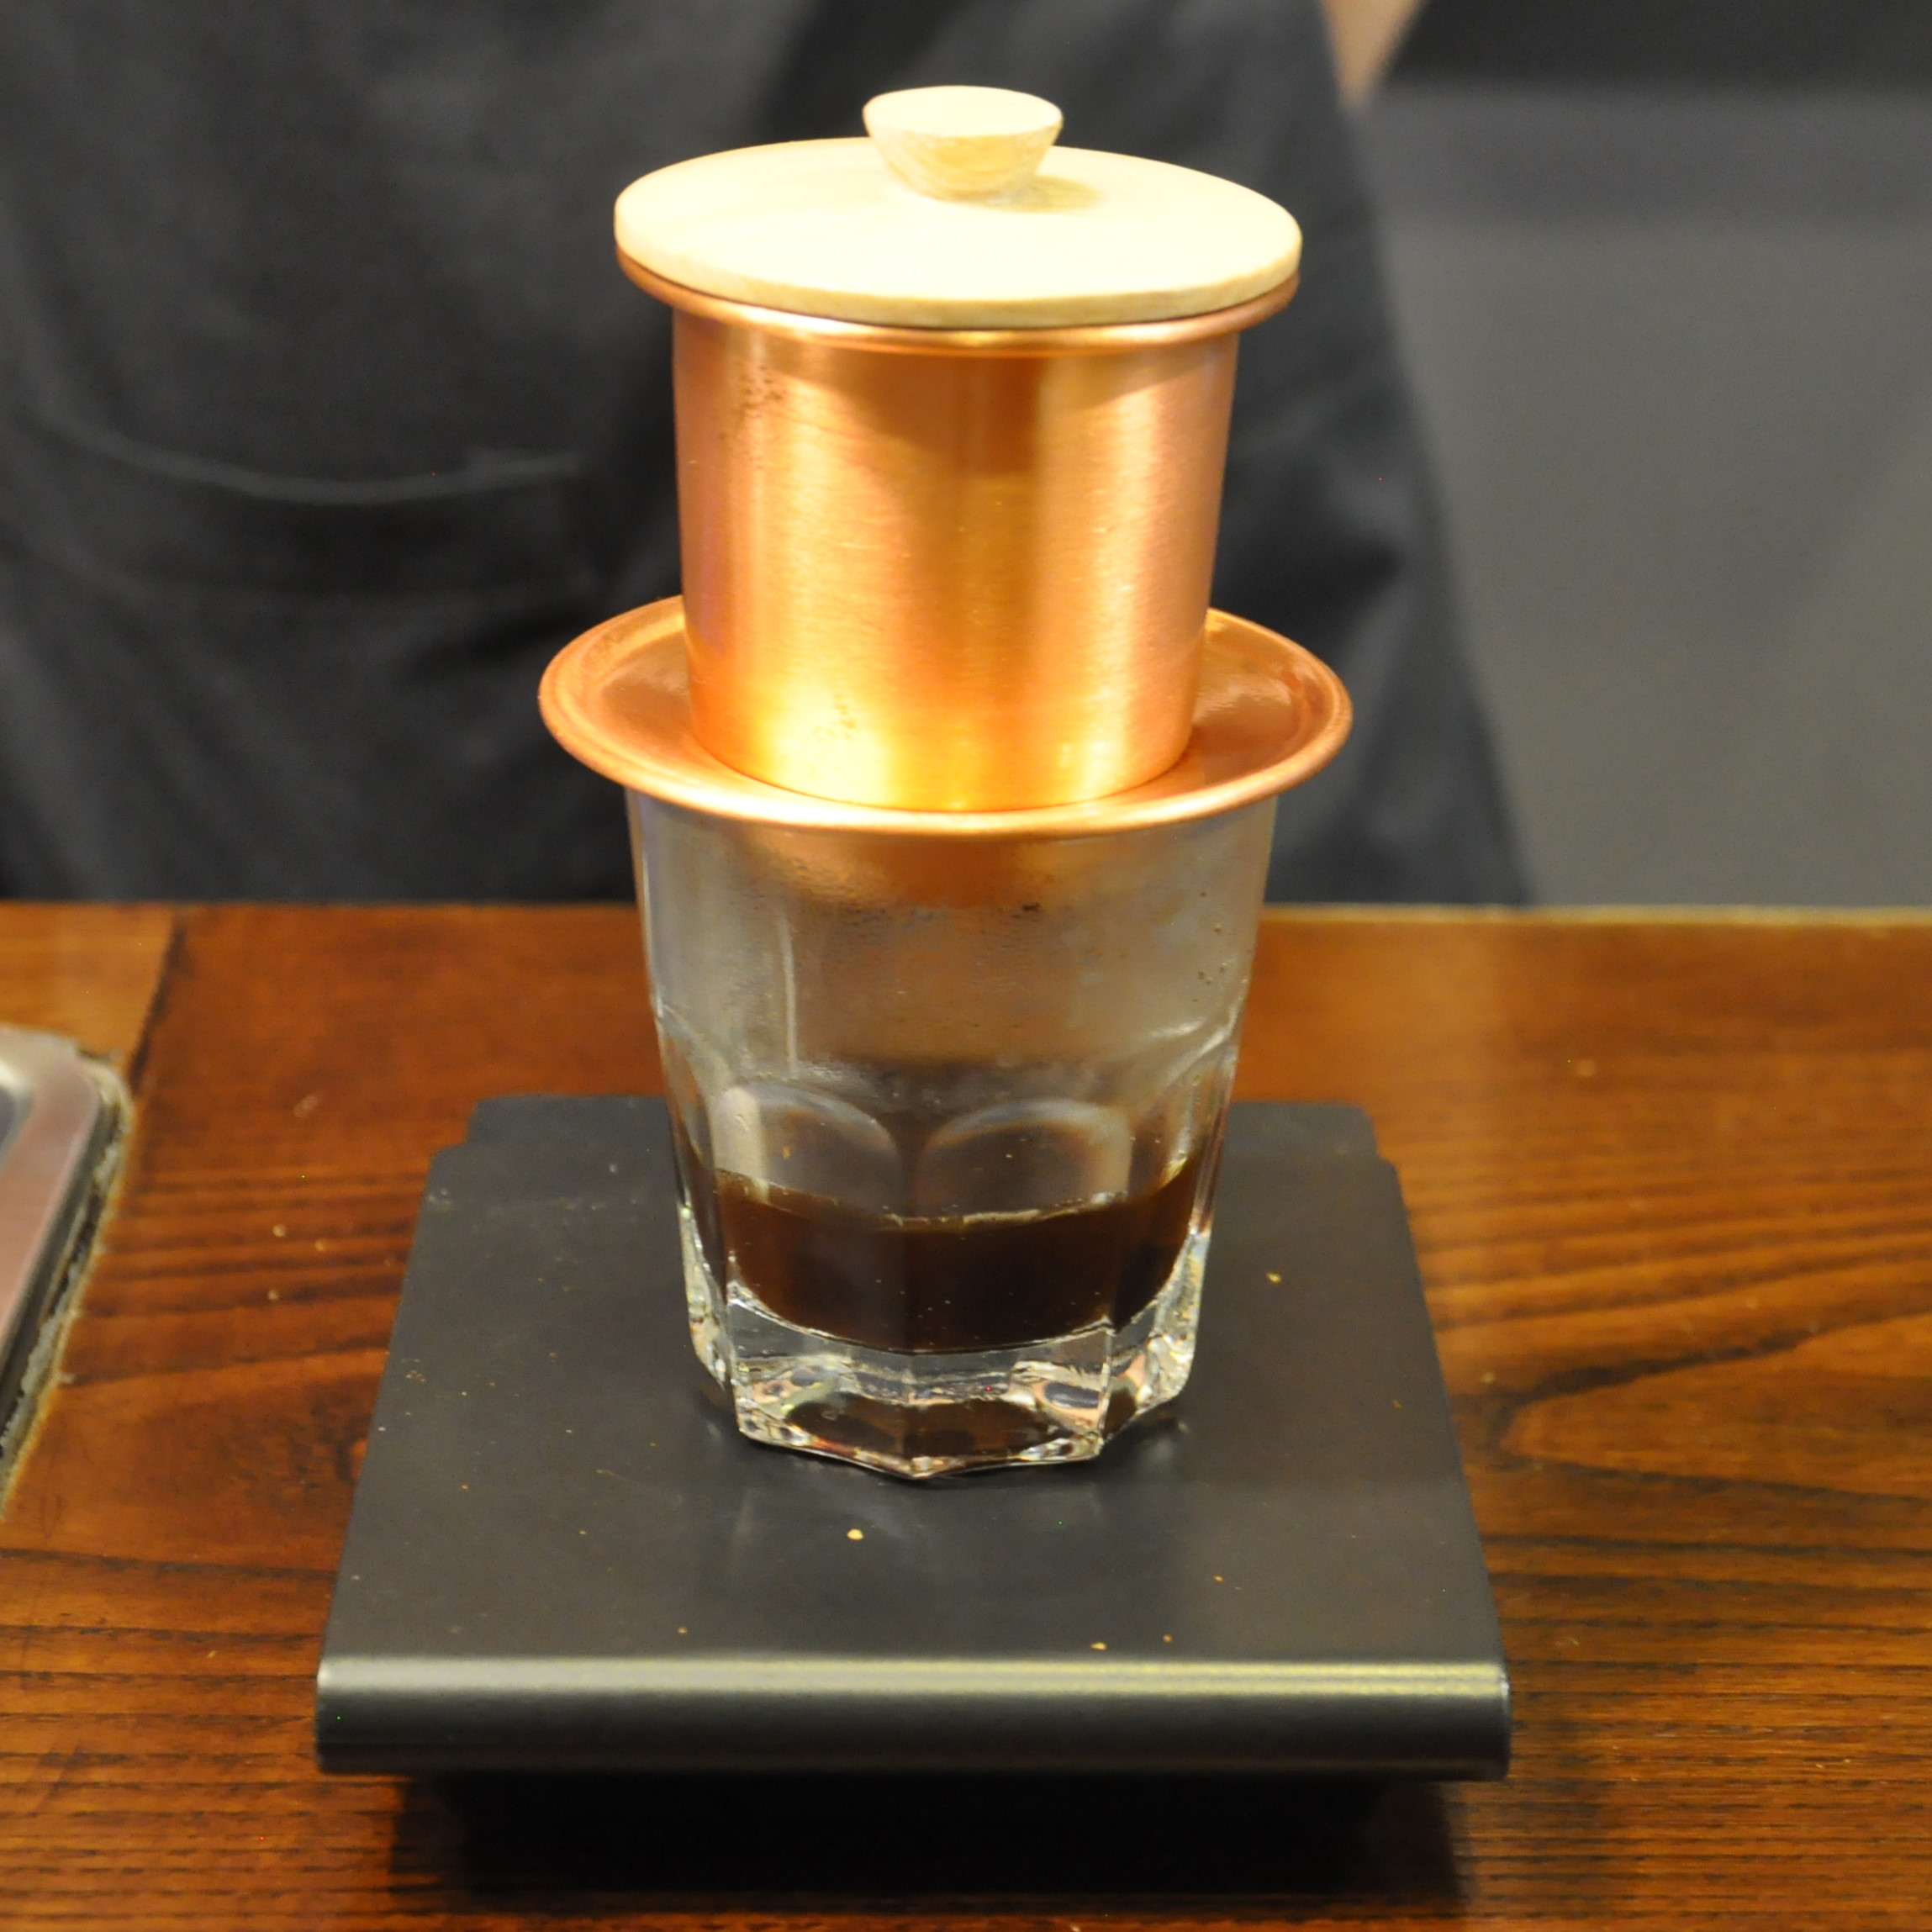 A traditional cup-top filter at The Caffinet in Hanoi.